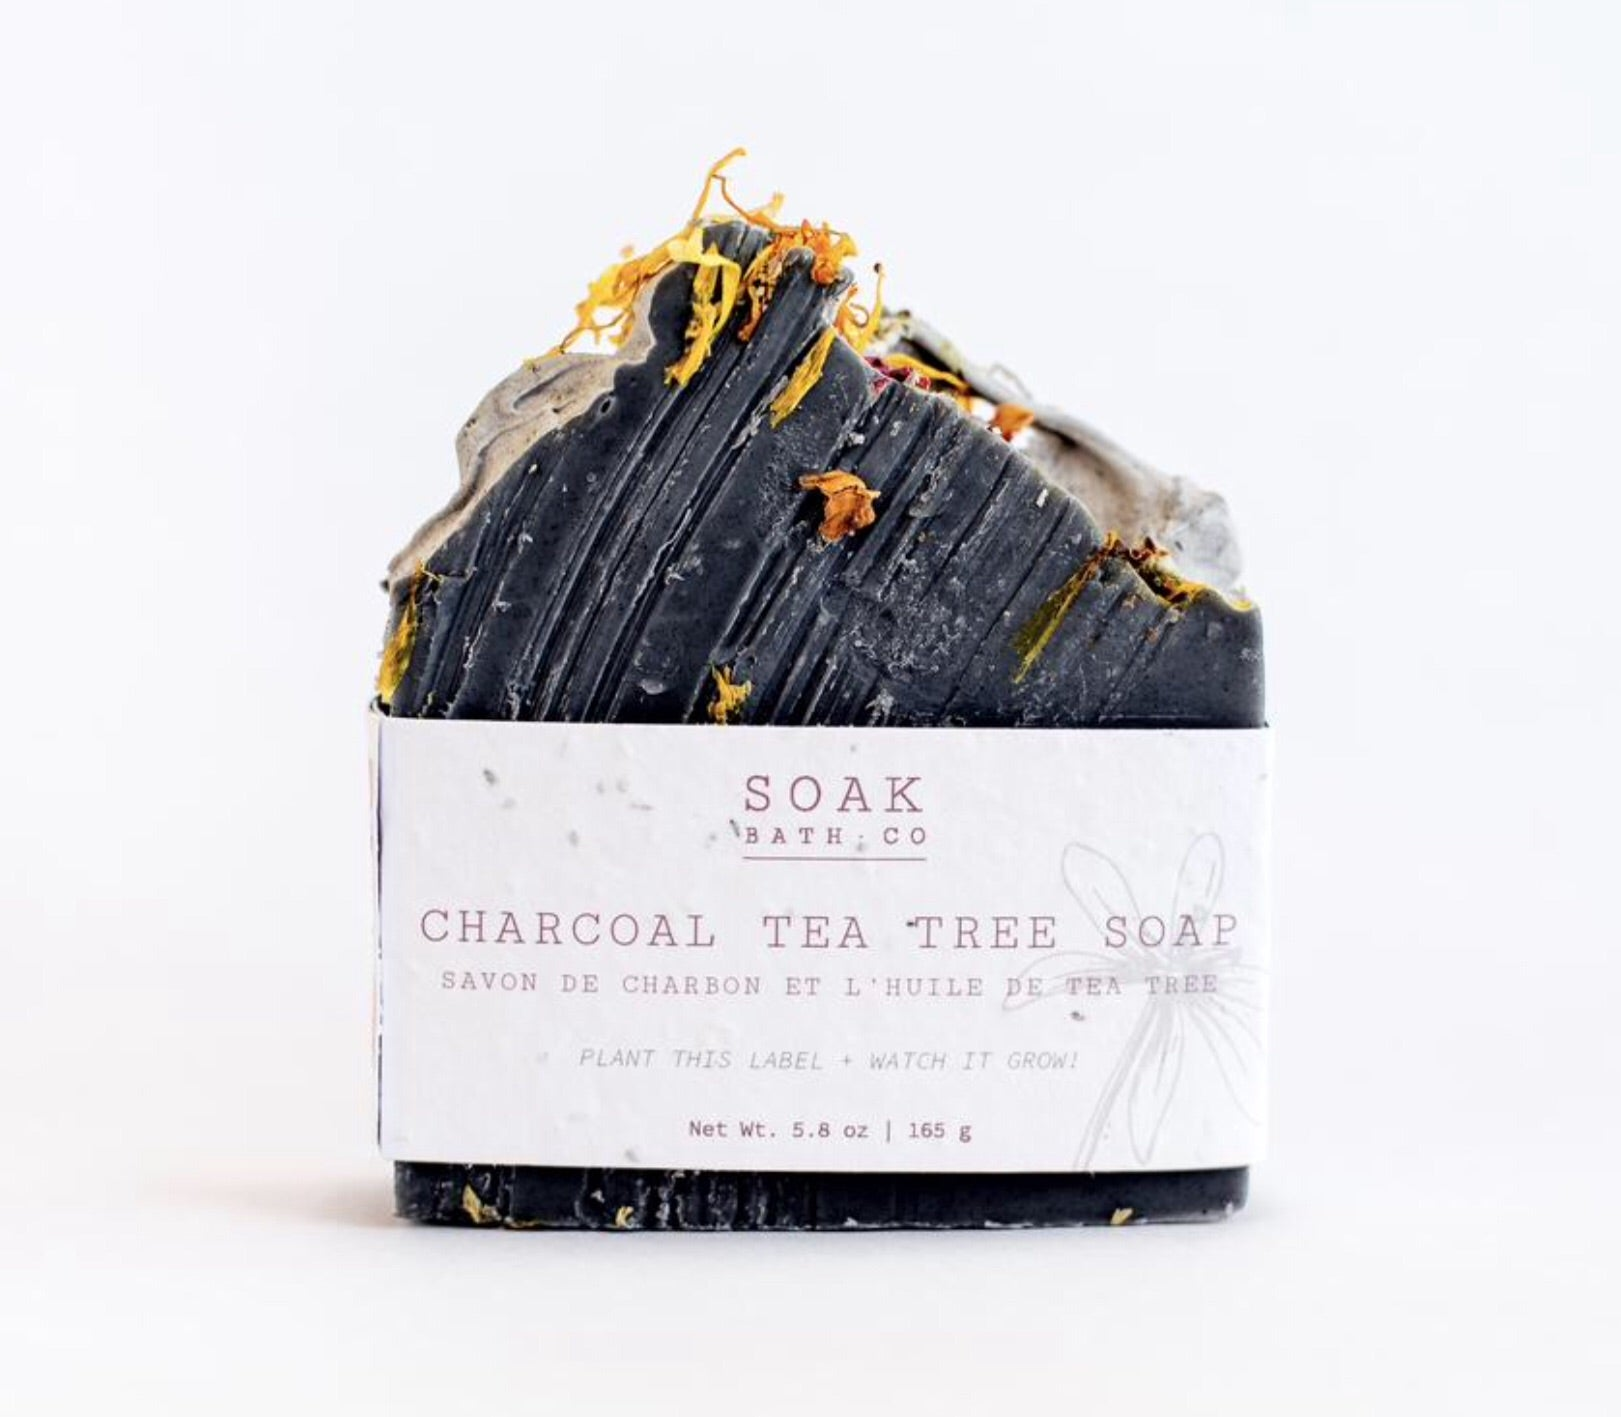 Charcoal tea tree Soap